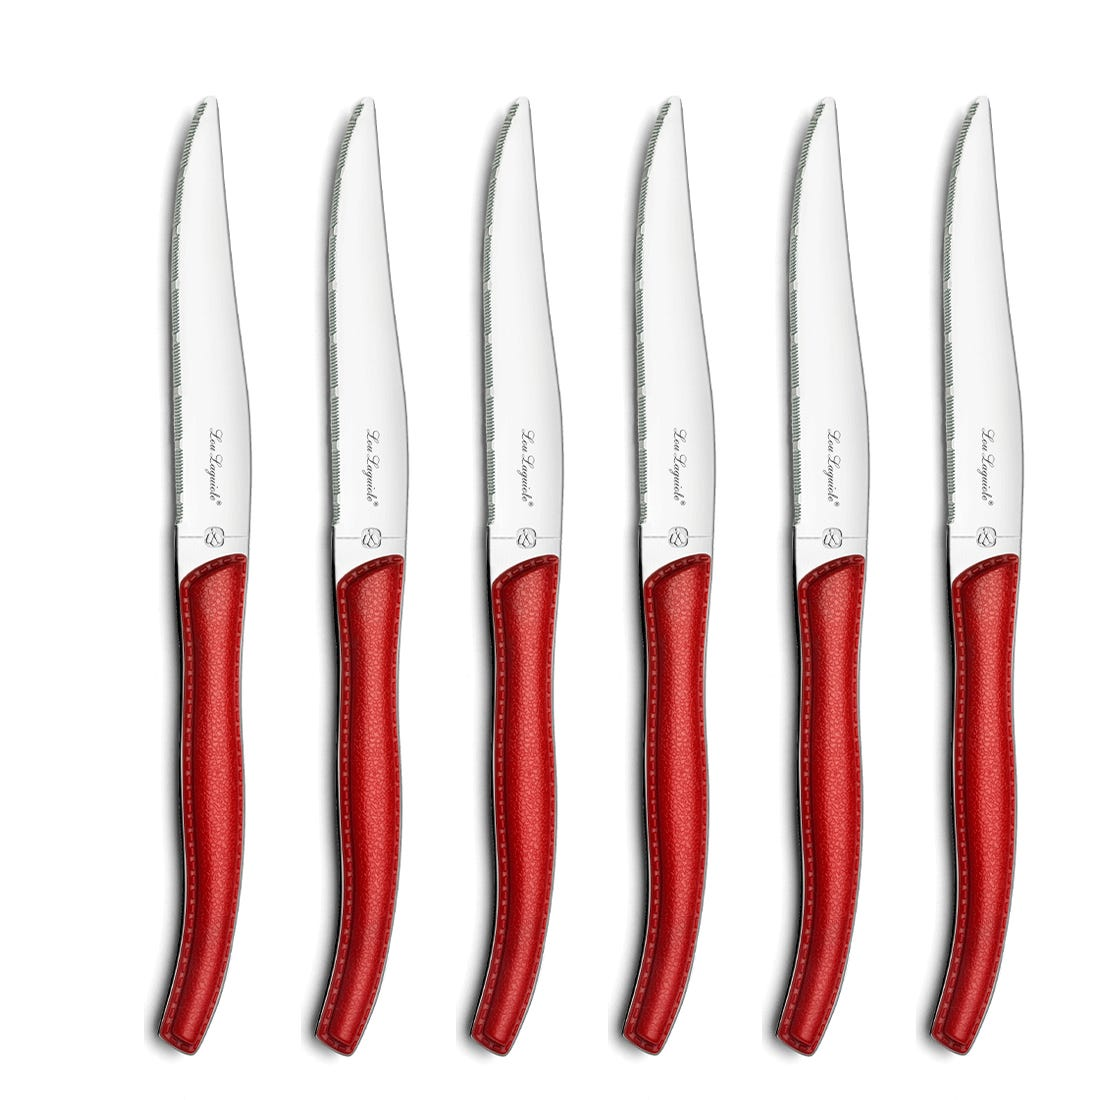 Amefa Steak Knife Set 6-pieces red 2271 SKY LAG